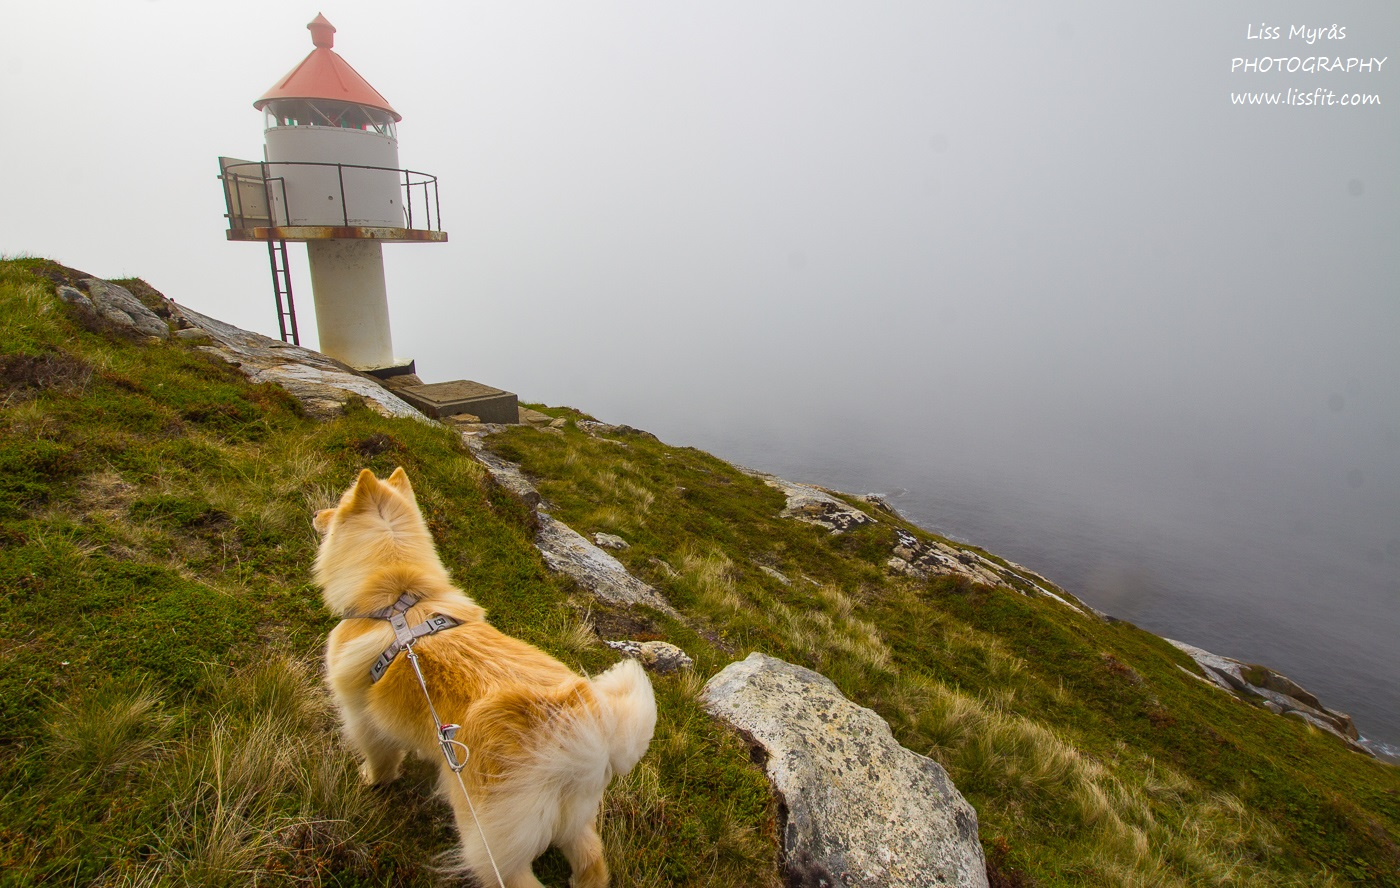 Hornneset lighthouse fyrlykt headland finsk lapphund dog hike Lofoten Norway